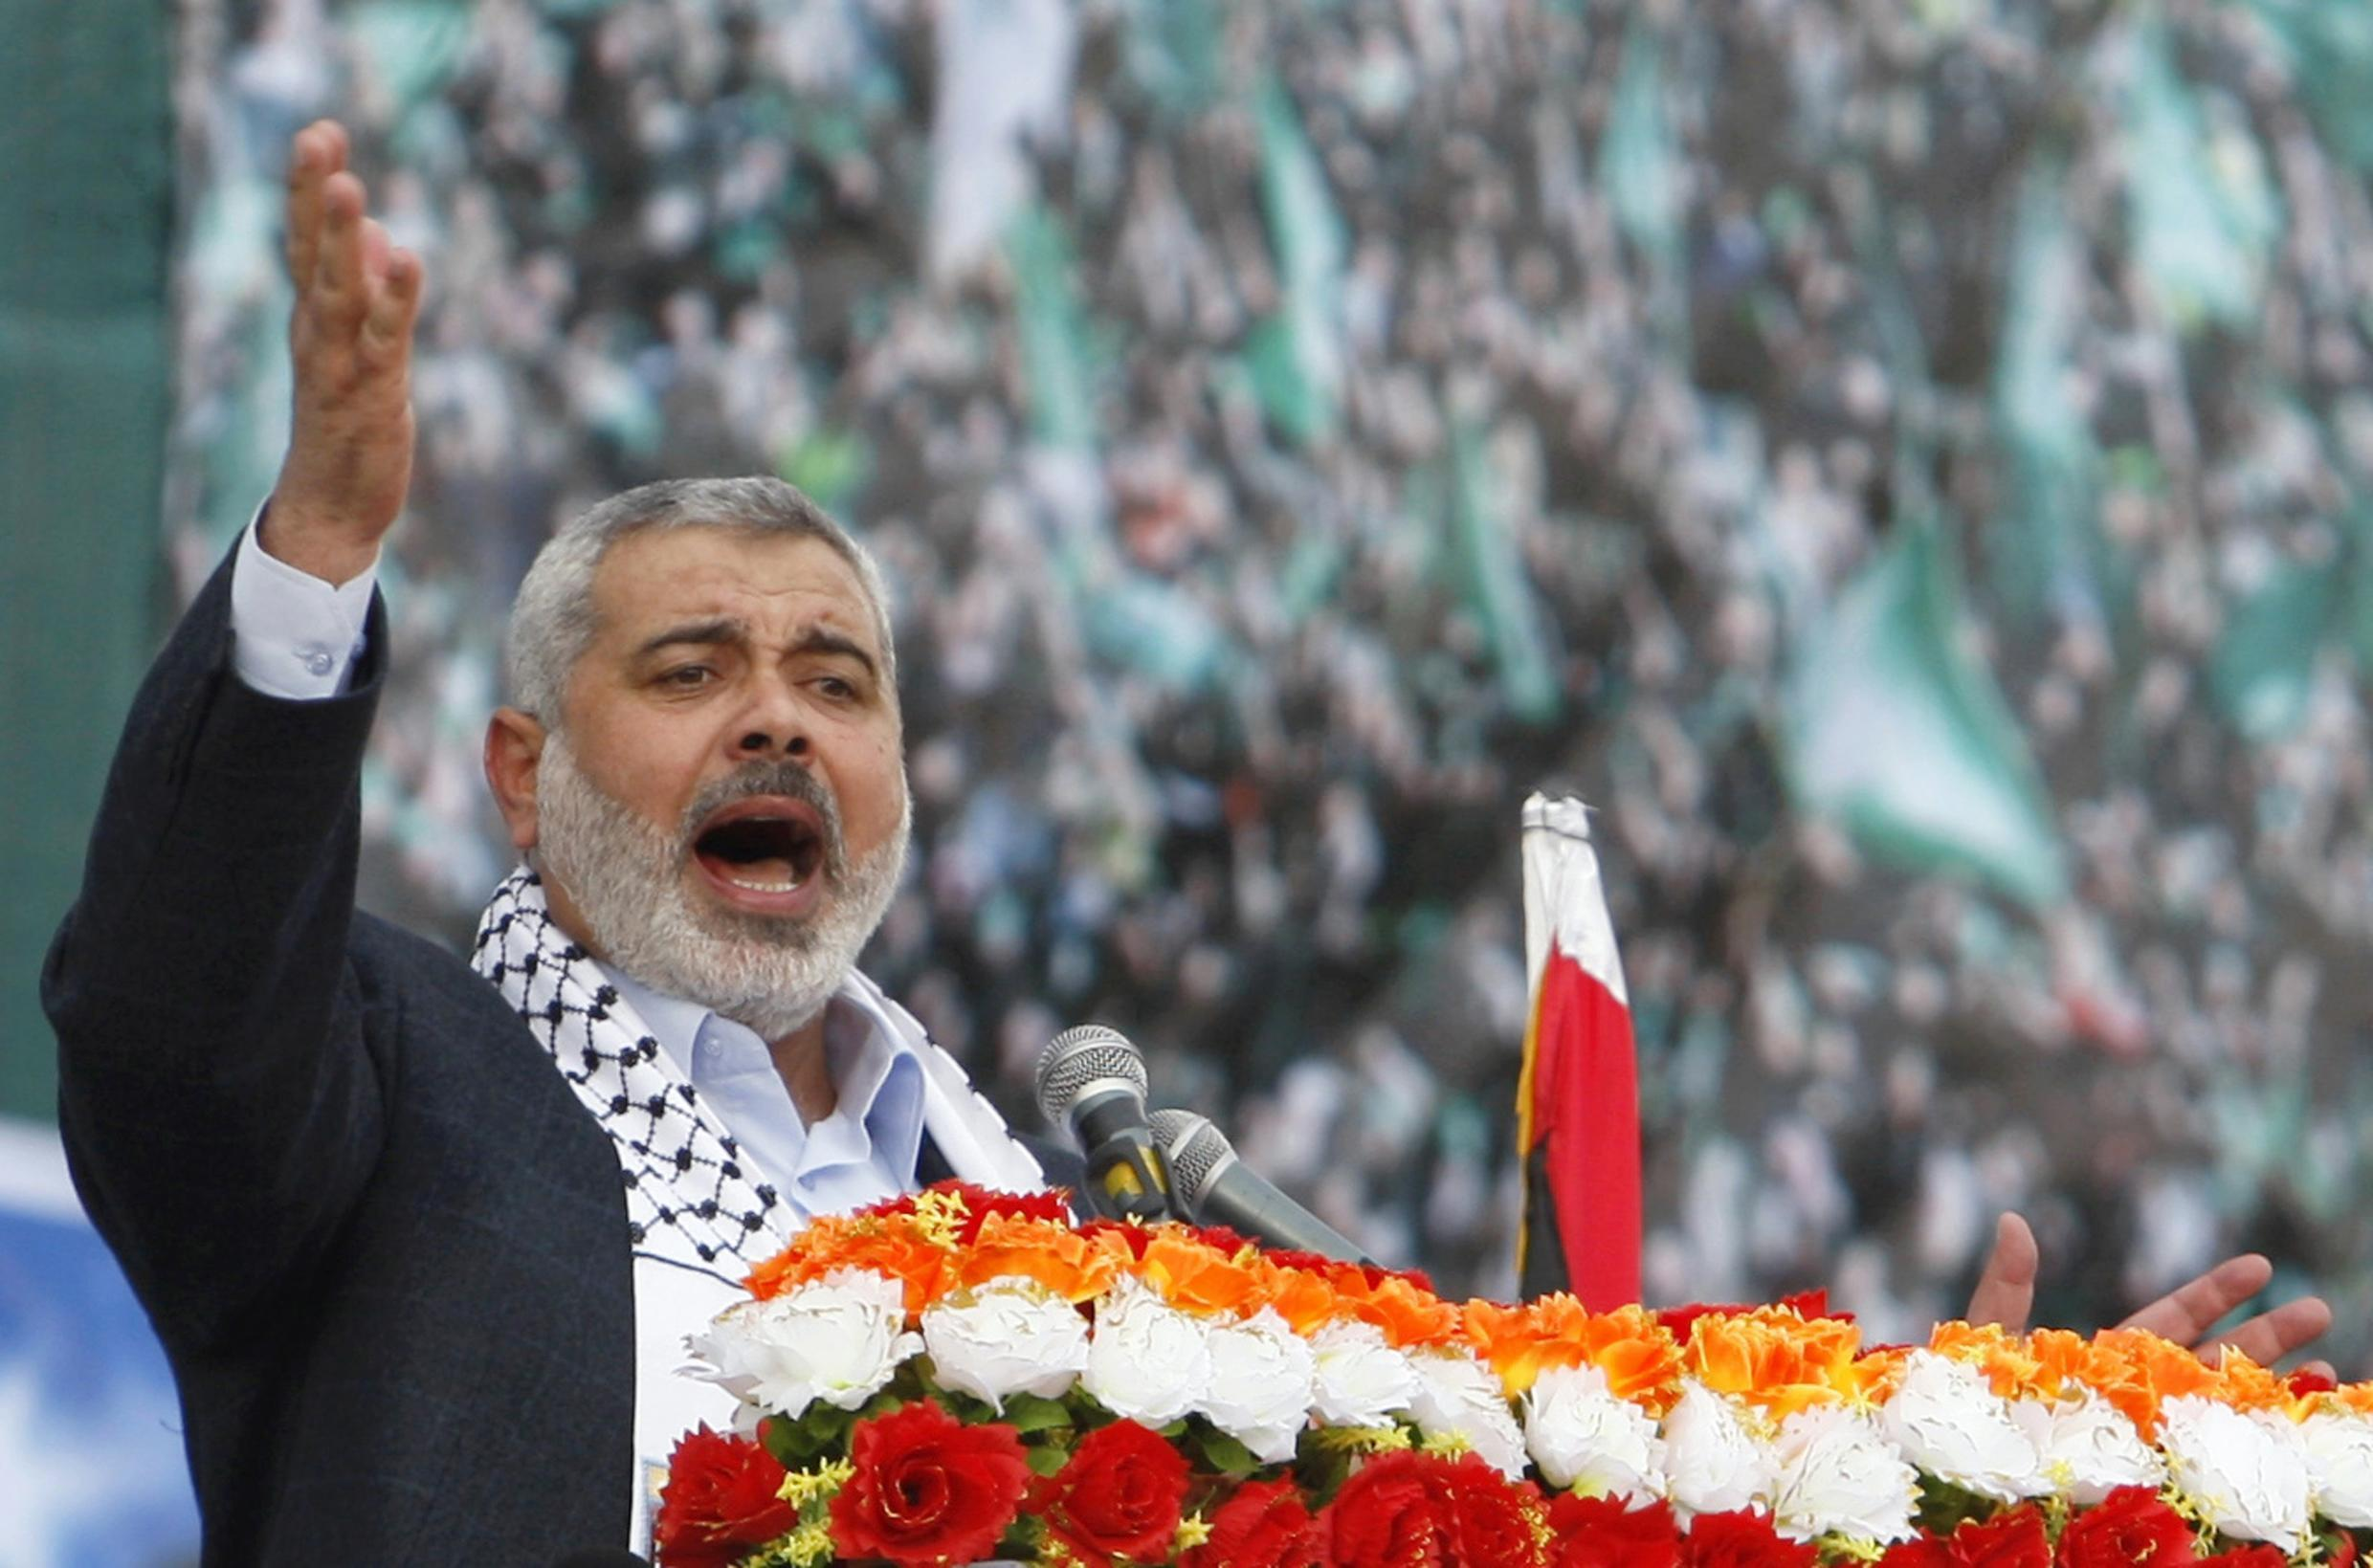 Ismail Haniyeh, Prime Minister of Hamas, celebrates the 22nd anniversary of the founding of Hamas on 14 November 2009